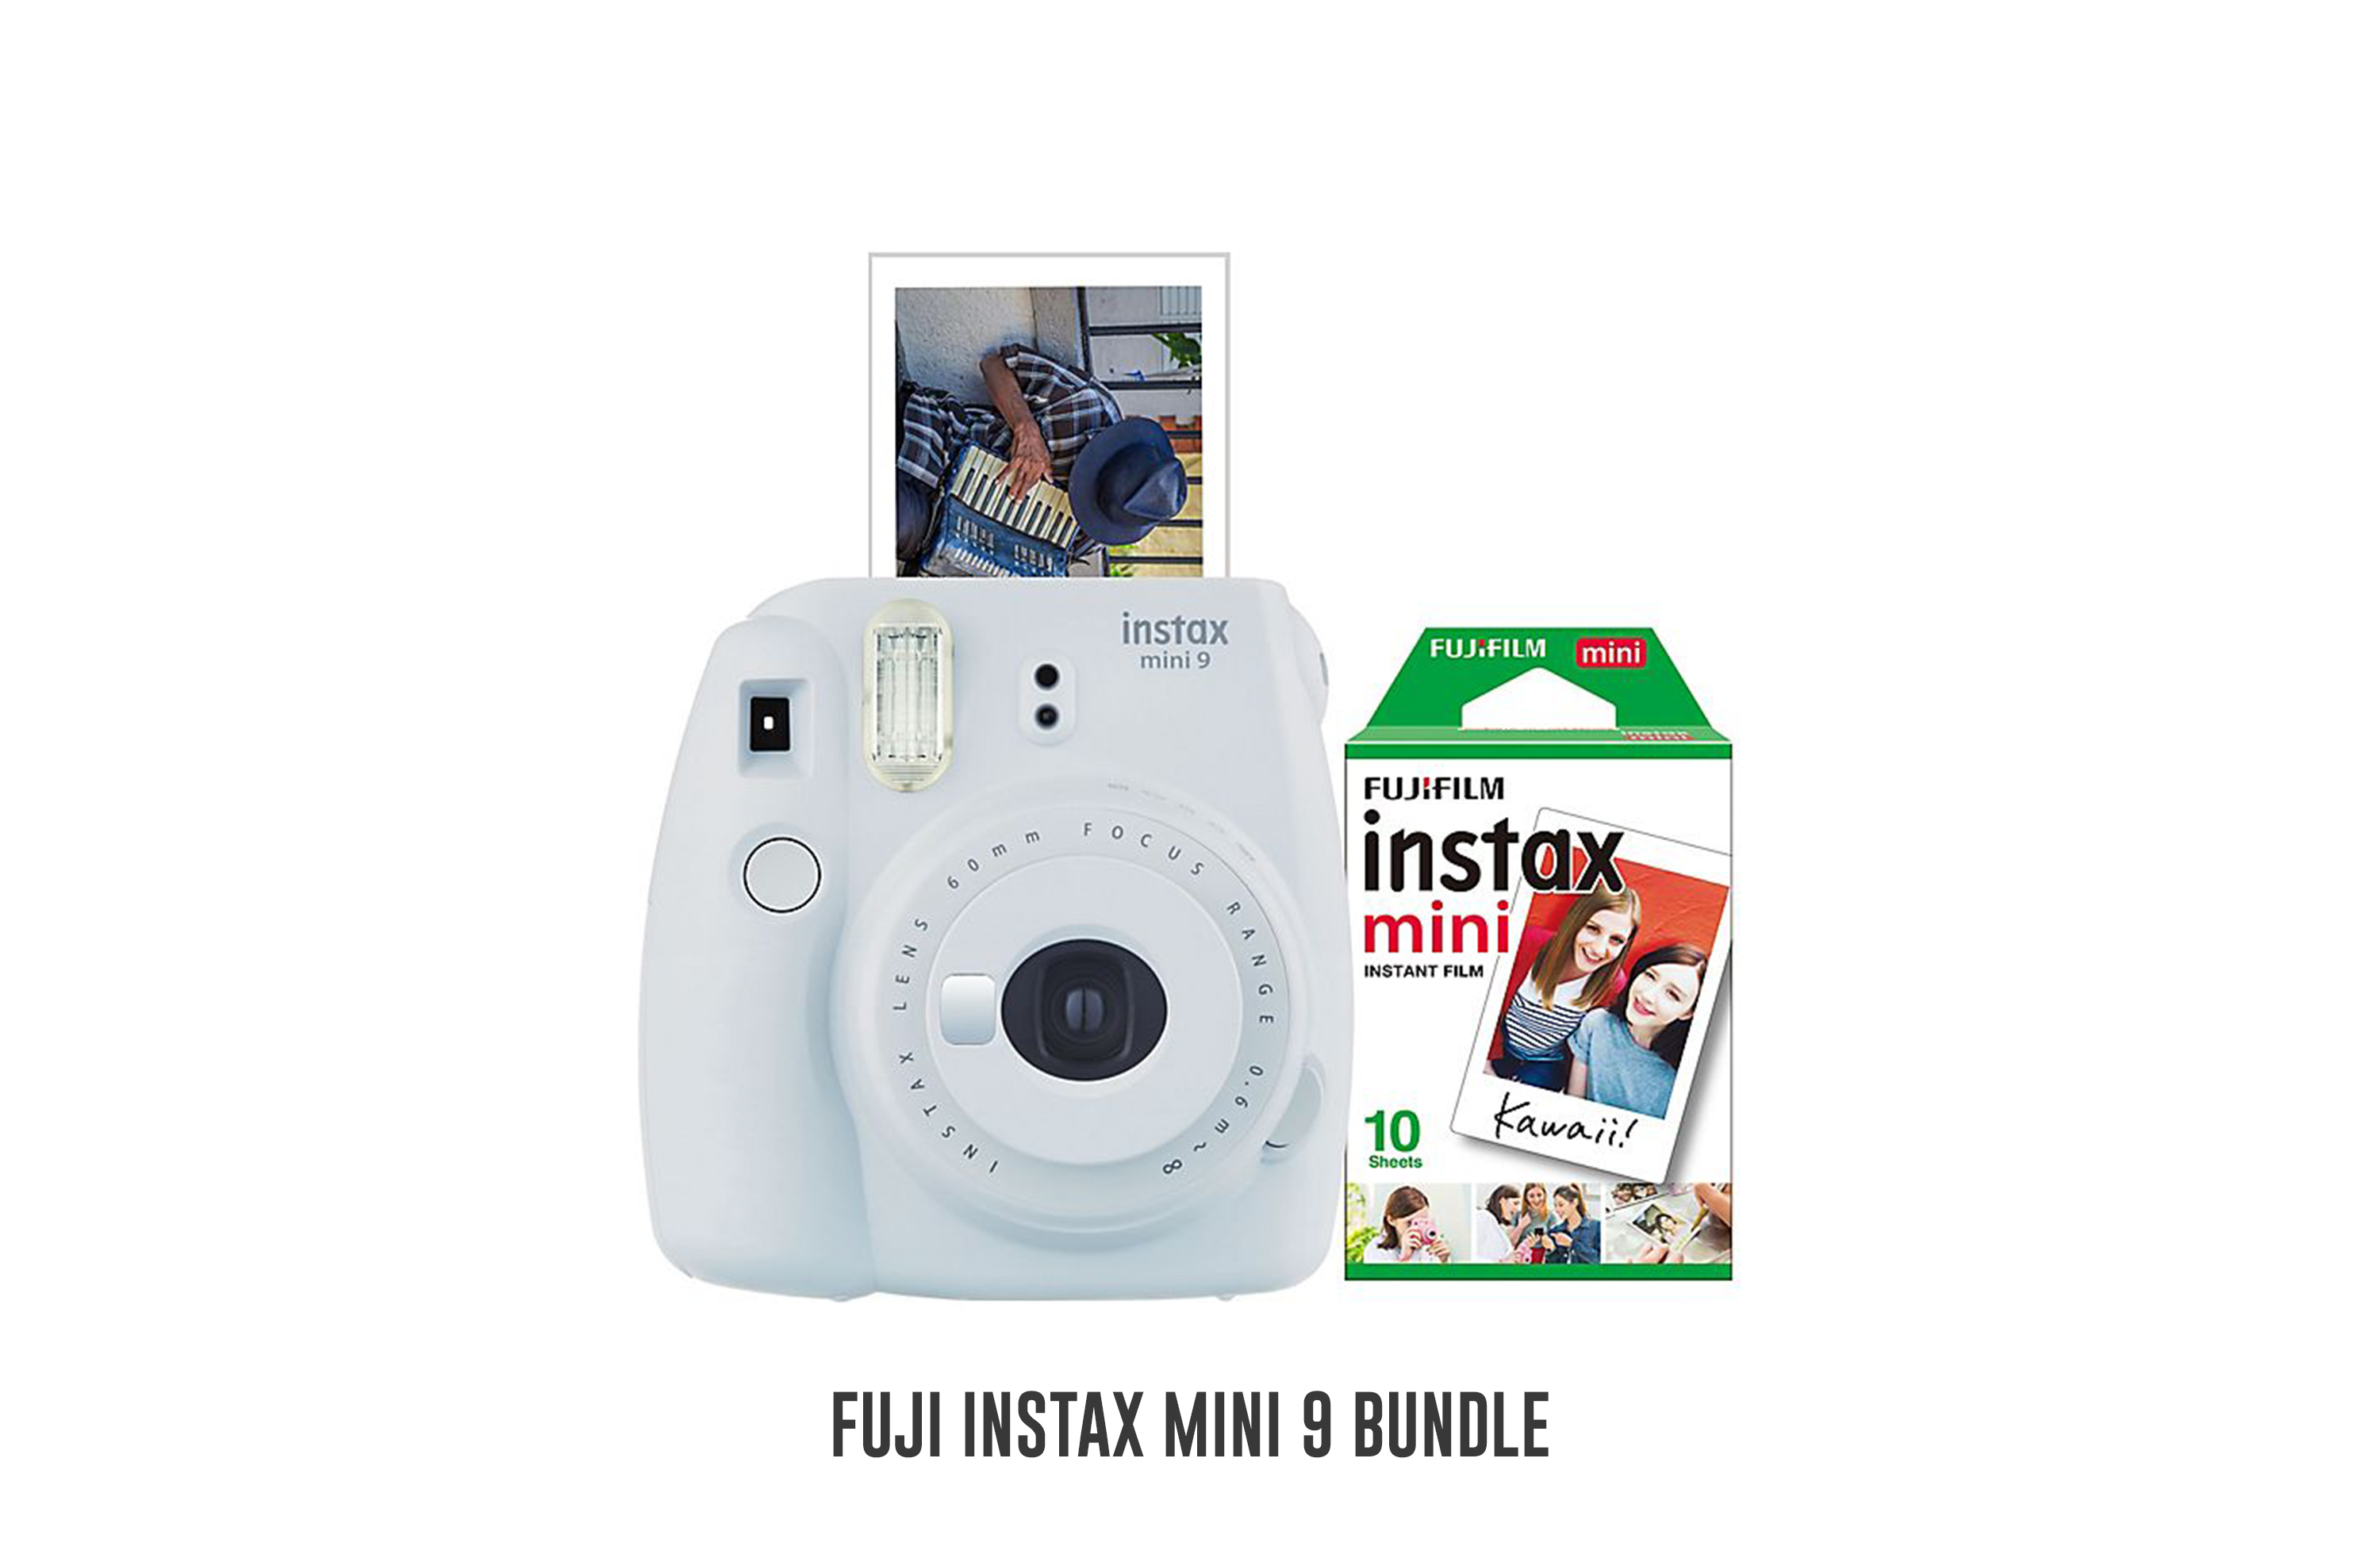 Fuji Instax Mini 9 bundle